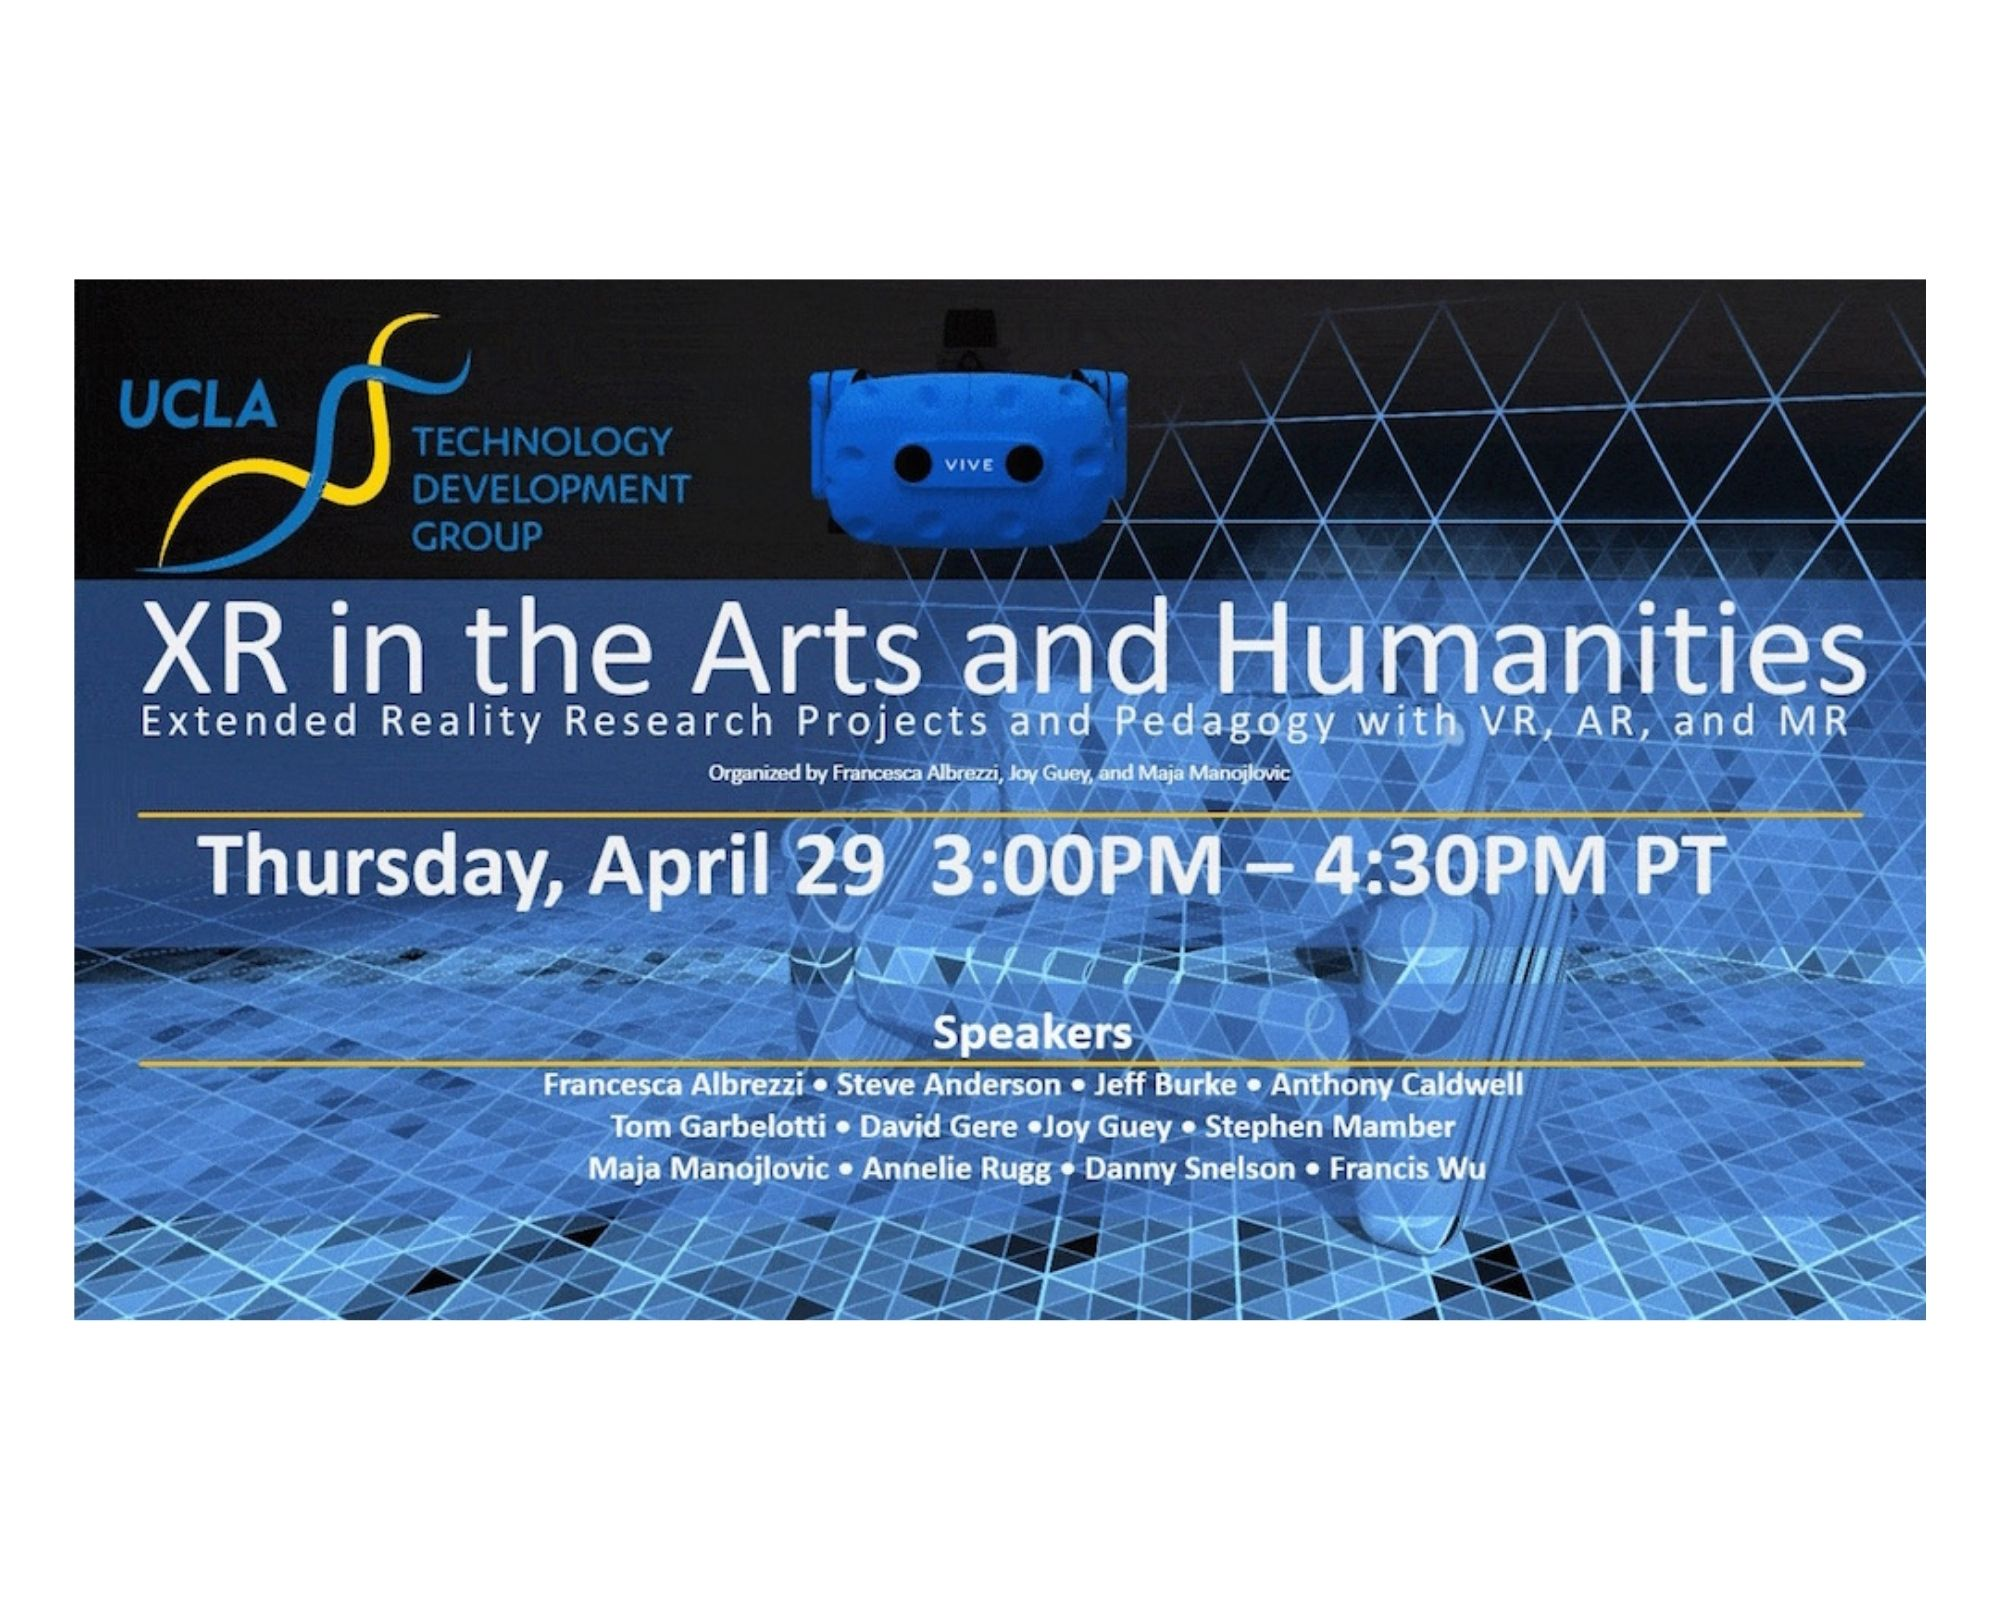 XR IN THE ARTS AND HUMANITIES: Through Positive Eyesat the Fowler Museum